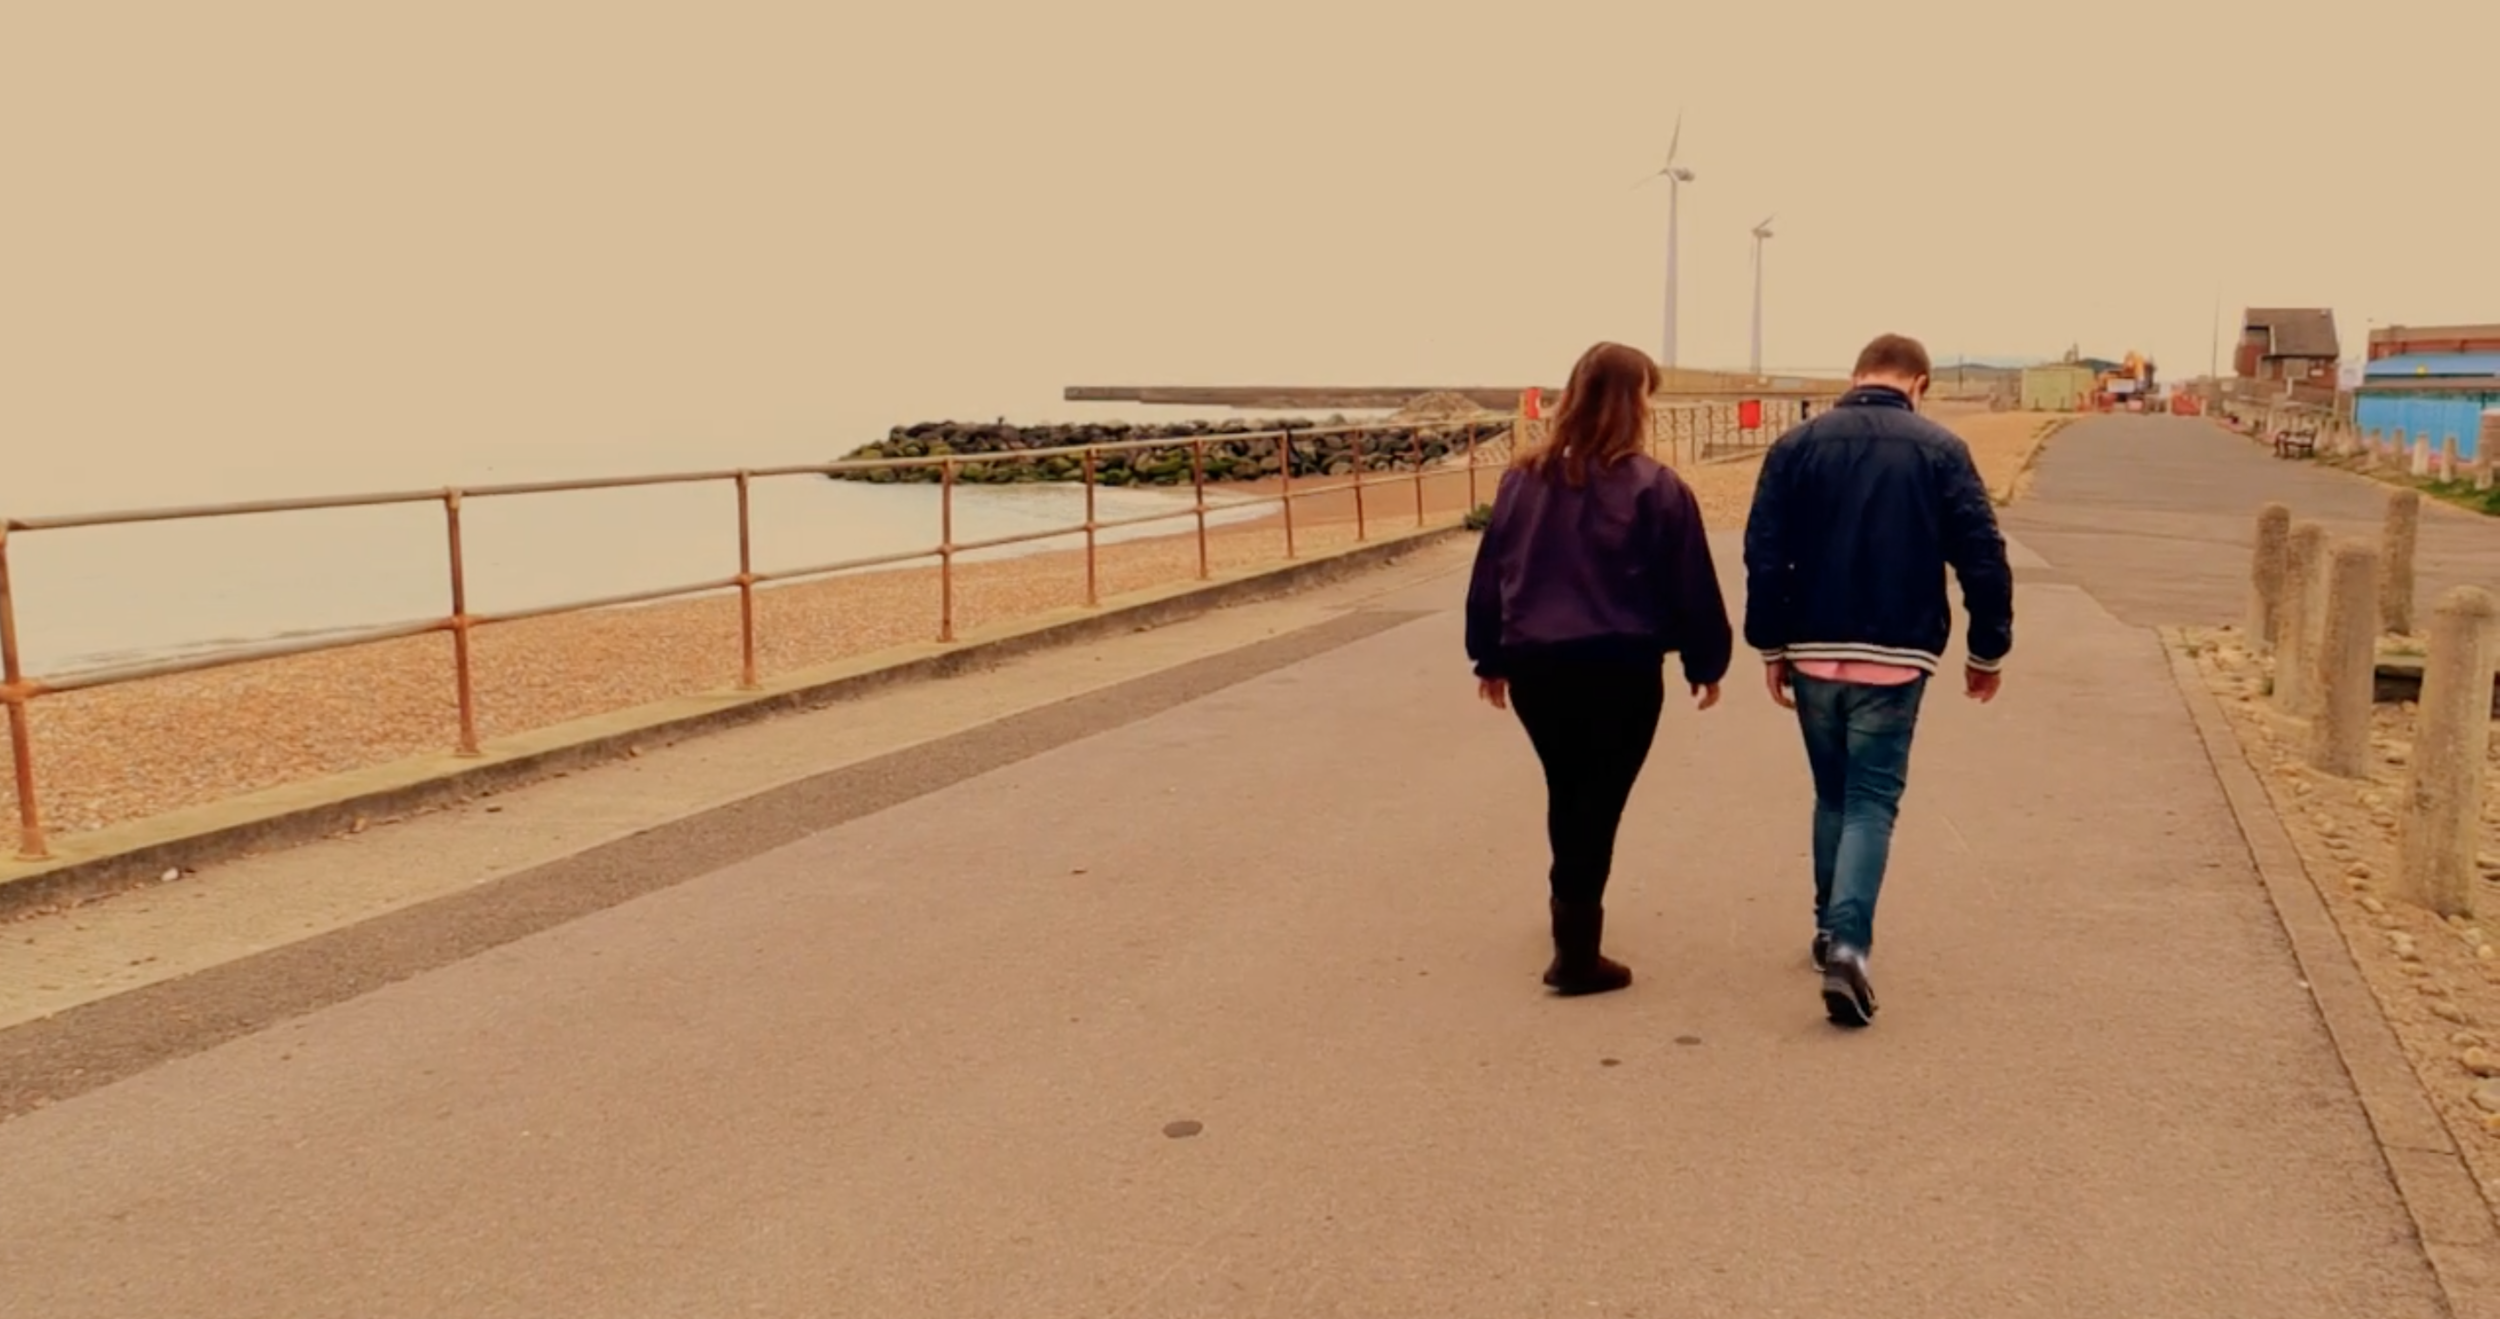 A young couple walking along a beach promenade. A still from short film, One in a Million.